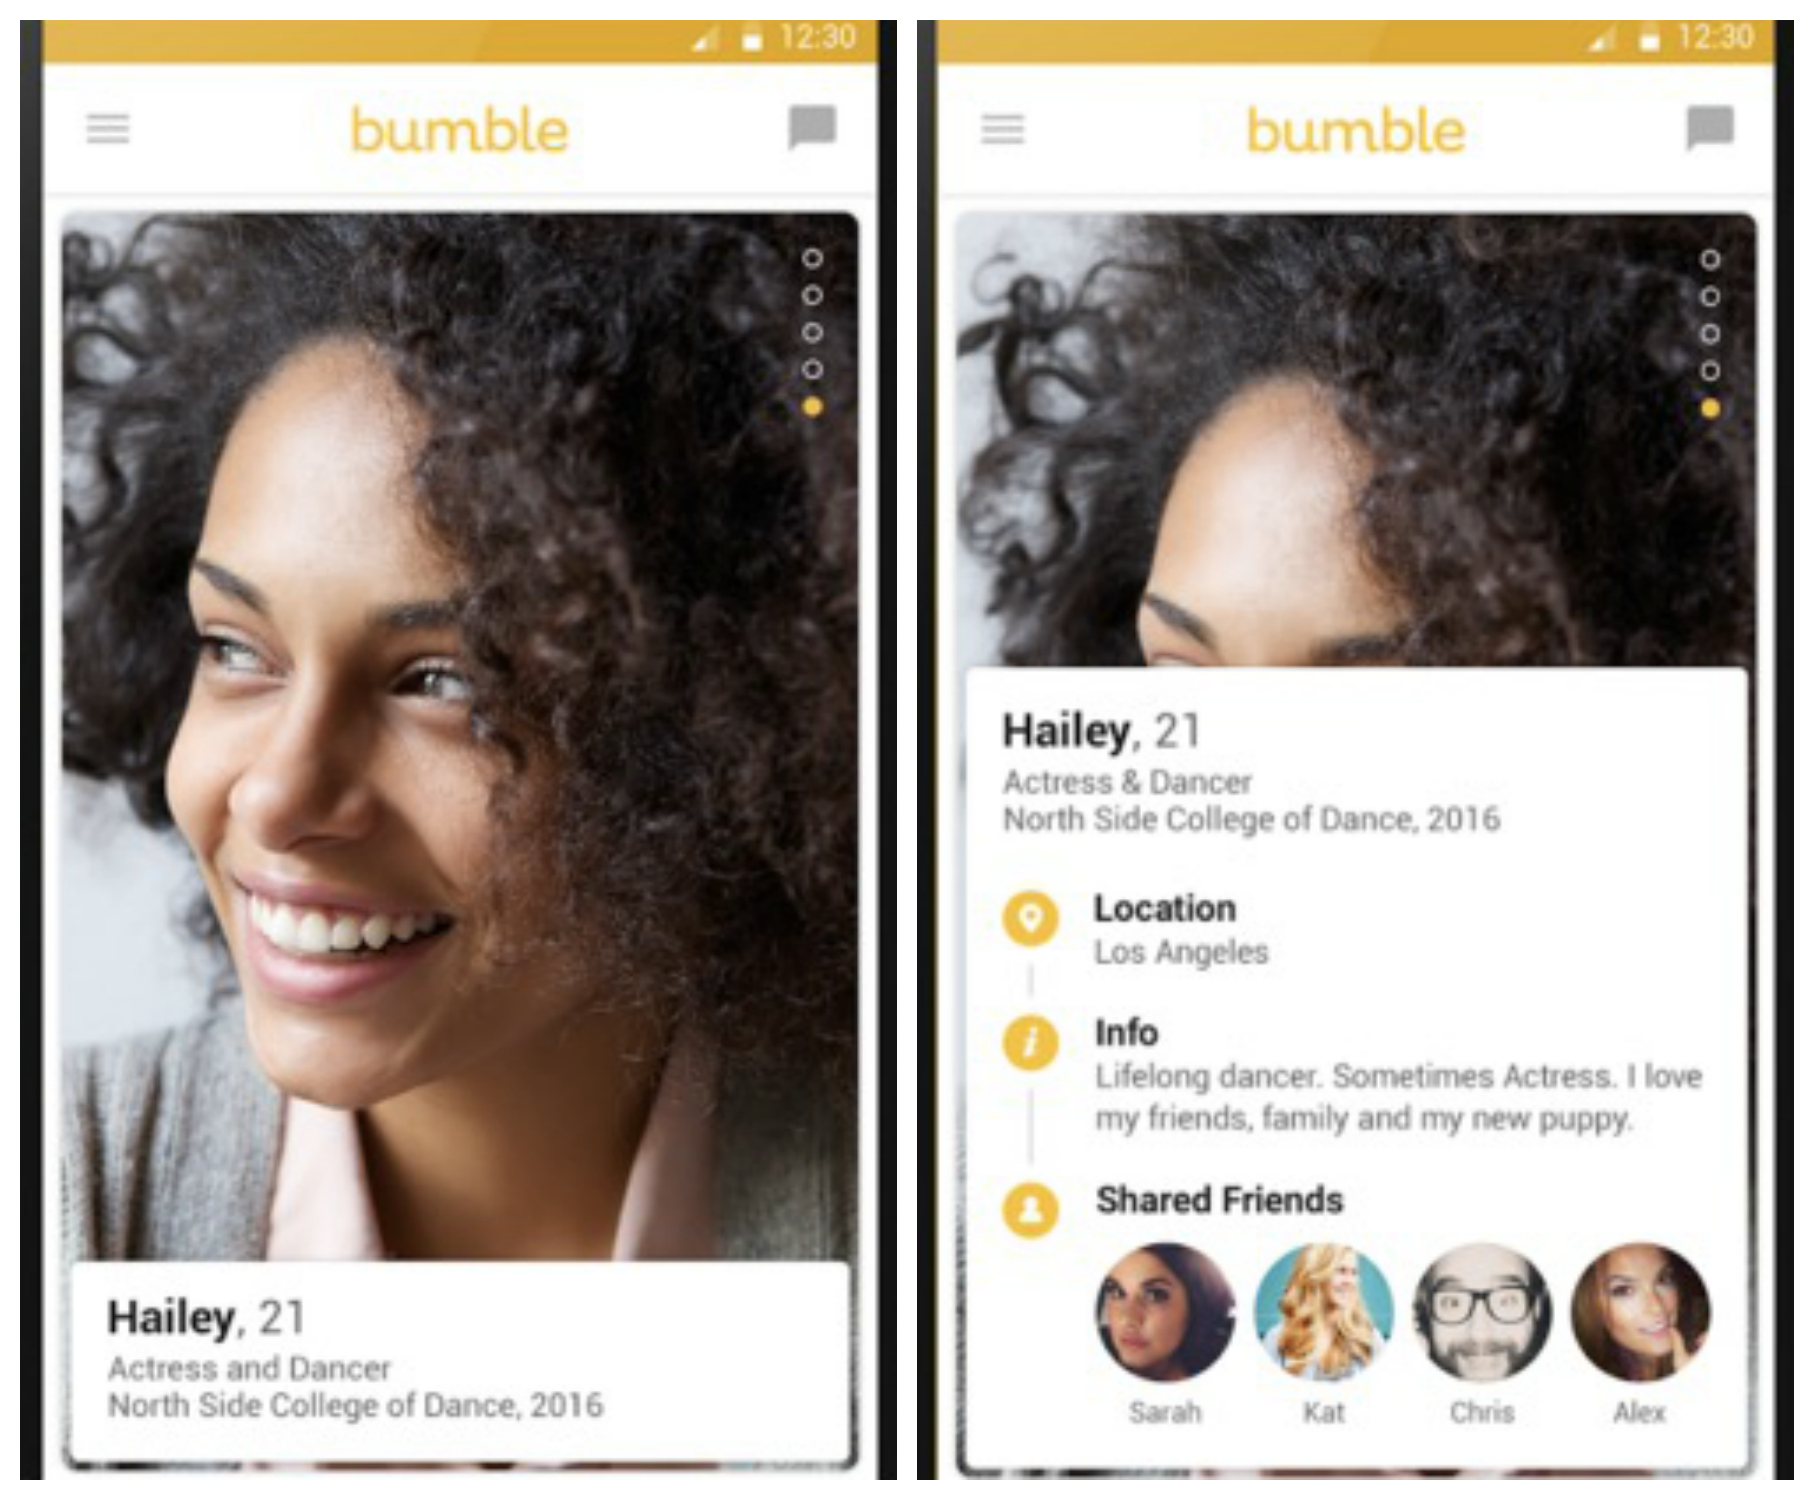 bumble dating app apk latest version